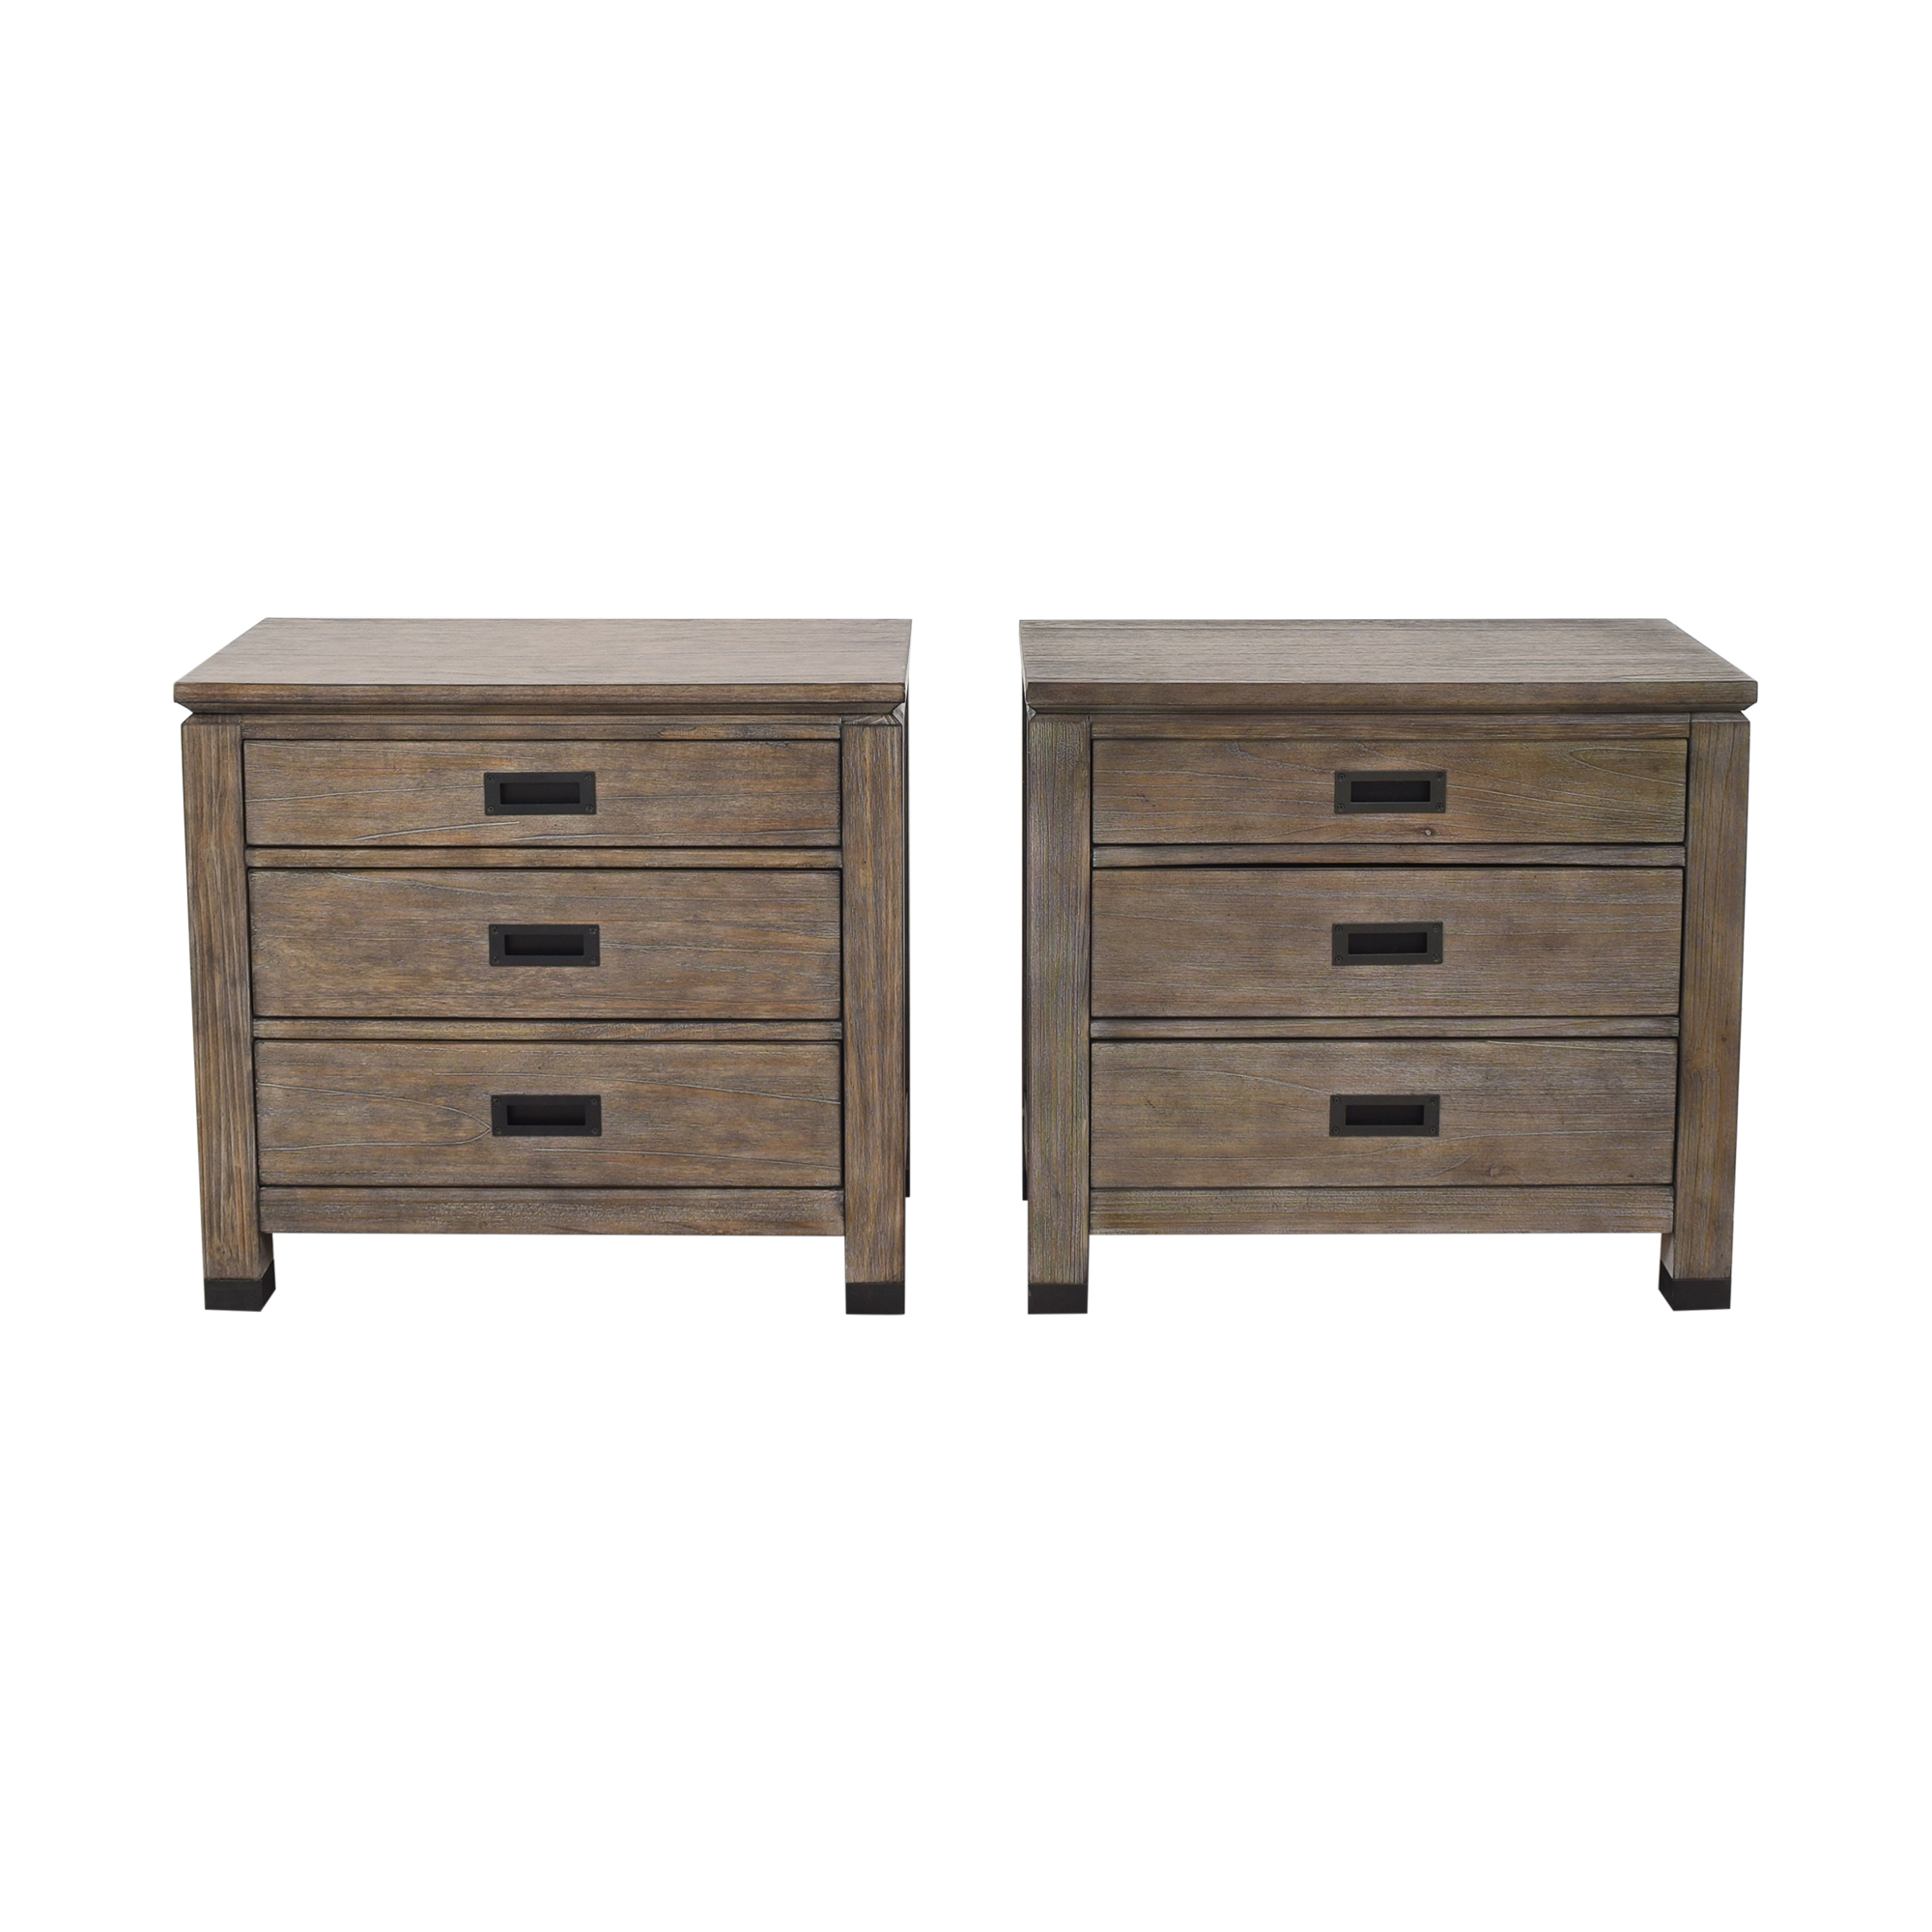 Coaster Fine Furniture Furniture Meester Night Stands / End Tables